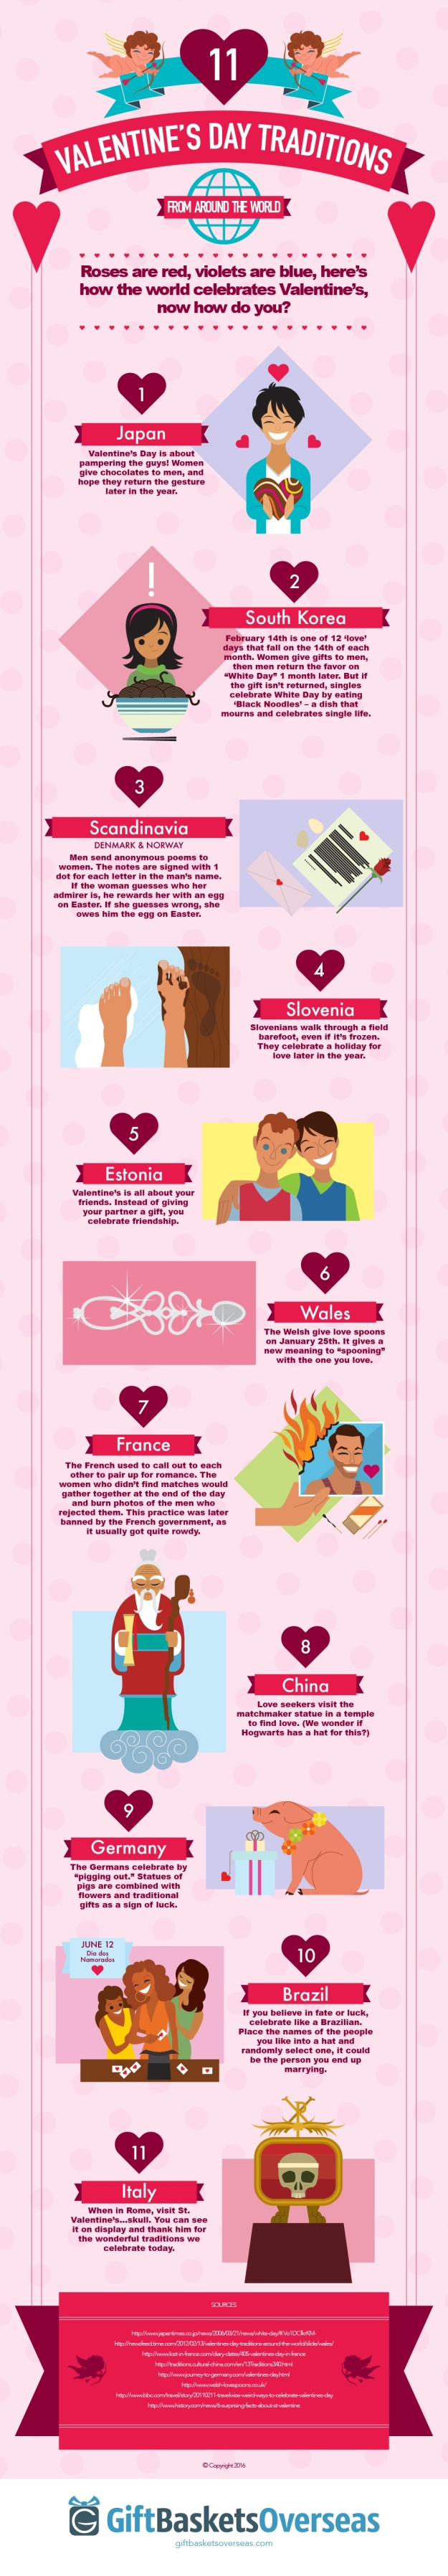 valentines-day-traditions-from-around-the-world